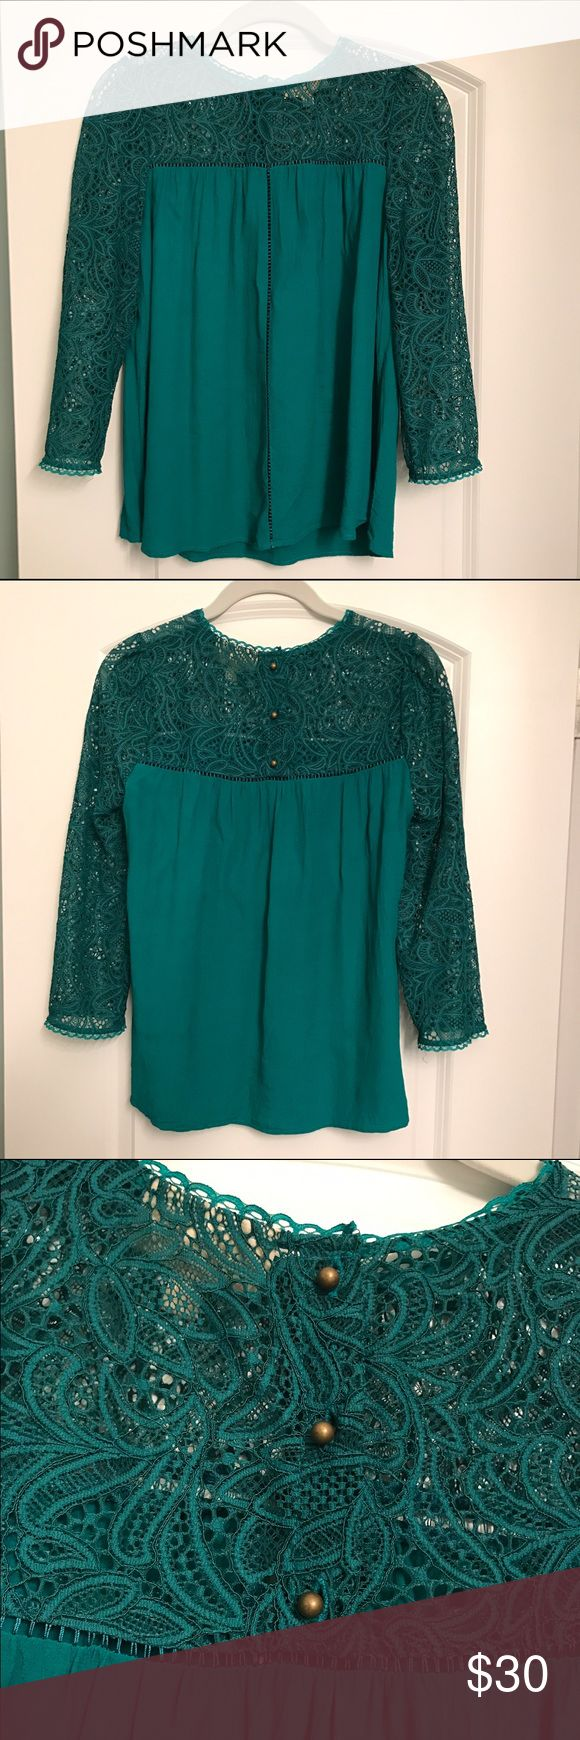 Turquoise Lace 3/4 Sleeve Shirt Beautiful turquoise shirt. 3/4 lace sleeves. Stitching down the front is see-through. Gold button closure on back. 53% viscose, 47% rayon. Anthropologie Tops Blouses